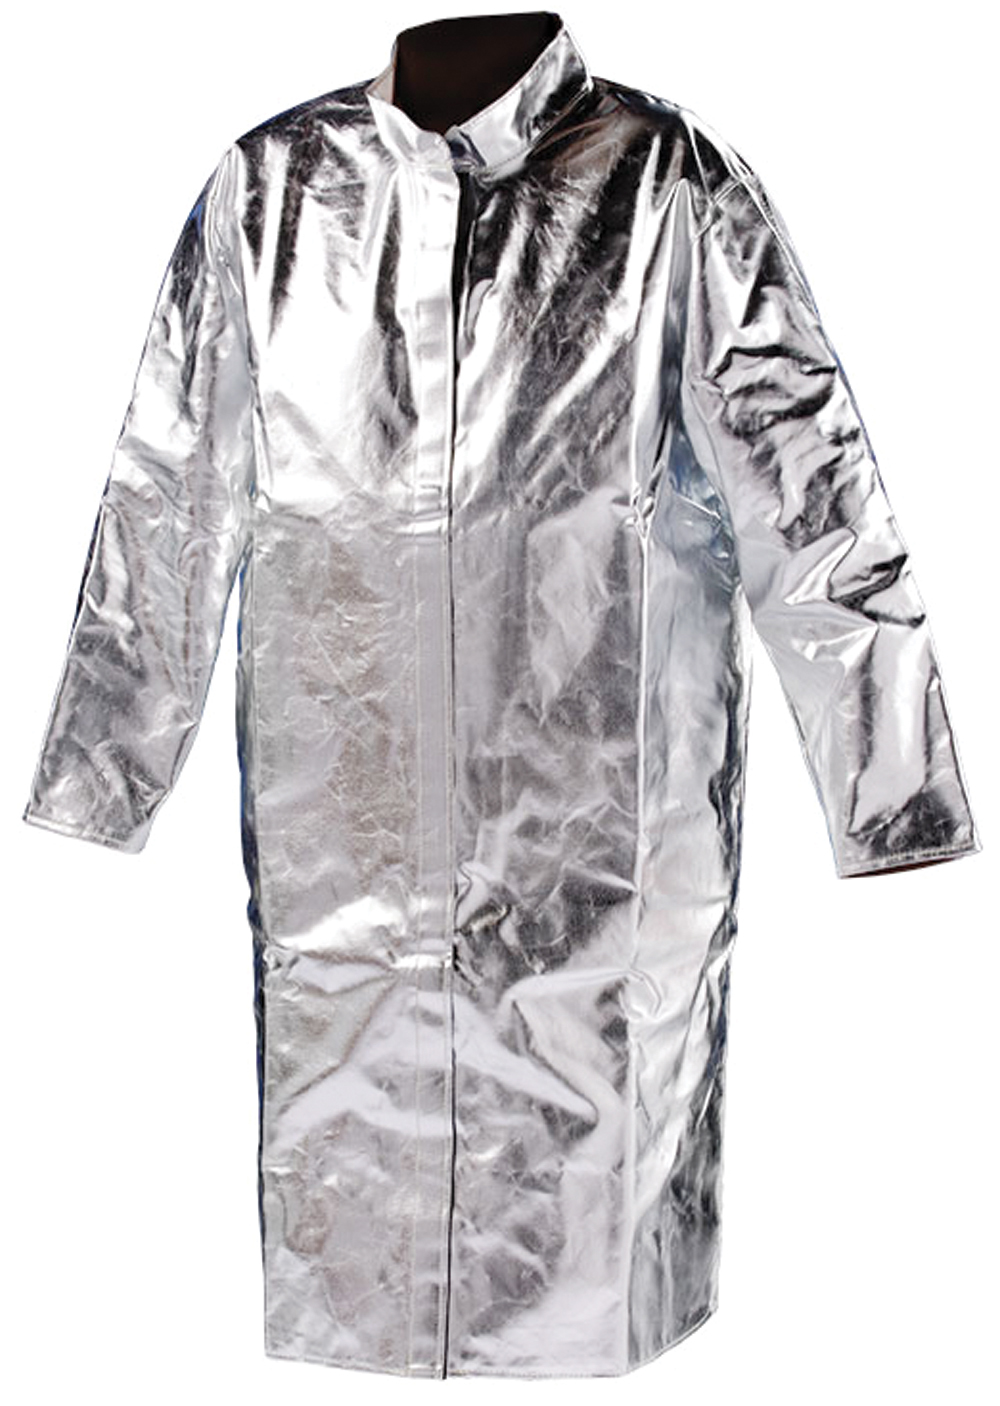 16 Oz Aluminized Rayon Jacket 40 Quot Small Saf 0031 Pmc